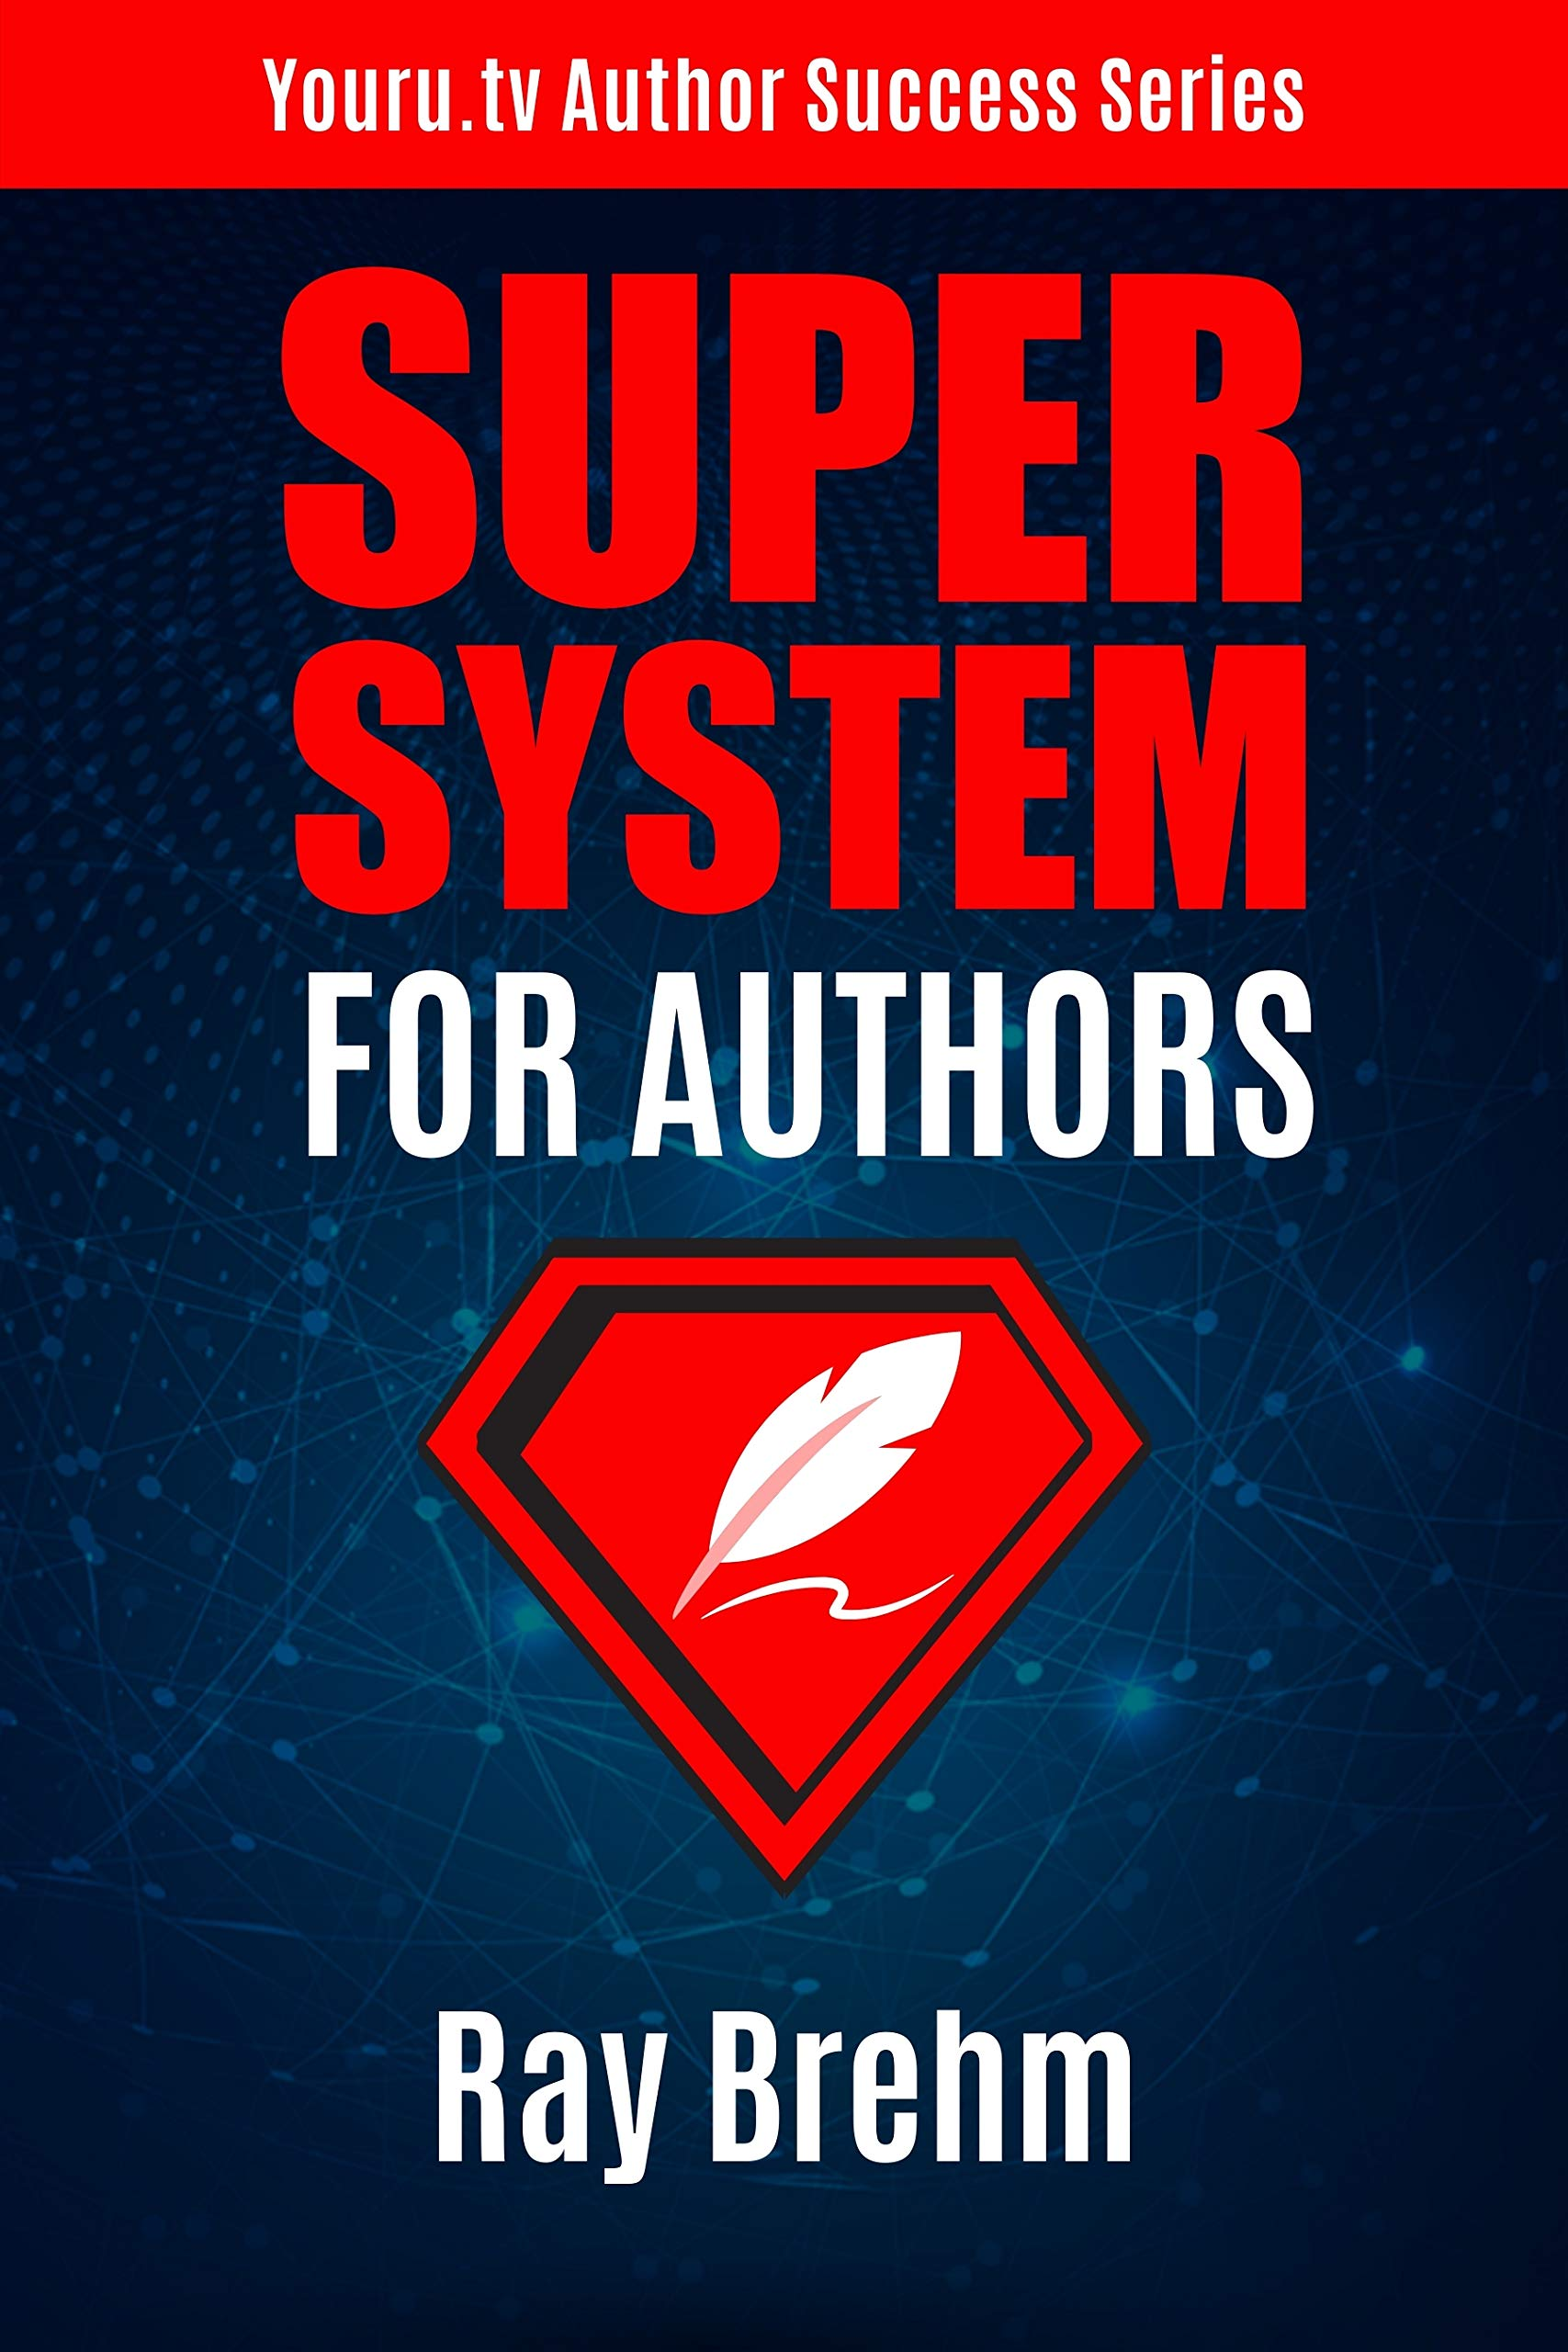 Super System For Authors: How To Write Your Book This Weekend AND At The Same Time Create a Course and Audiobook (Youru.tv Author Success Series 2)